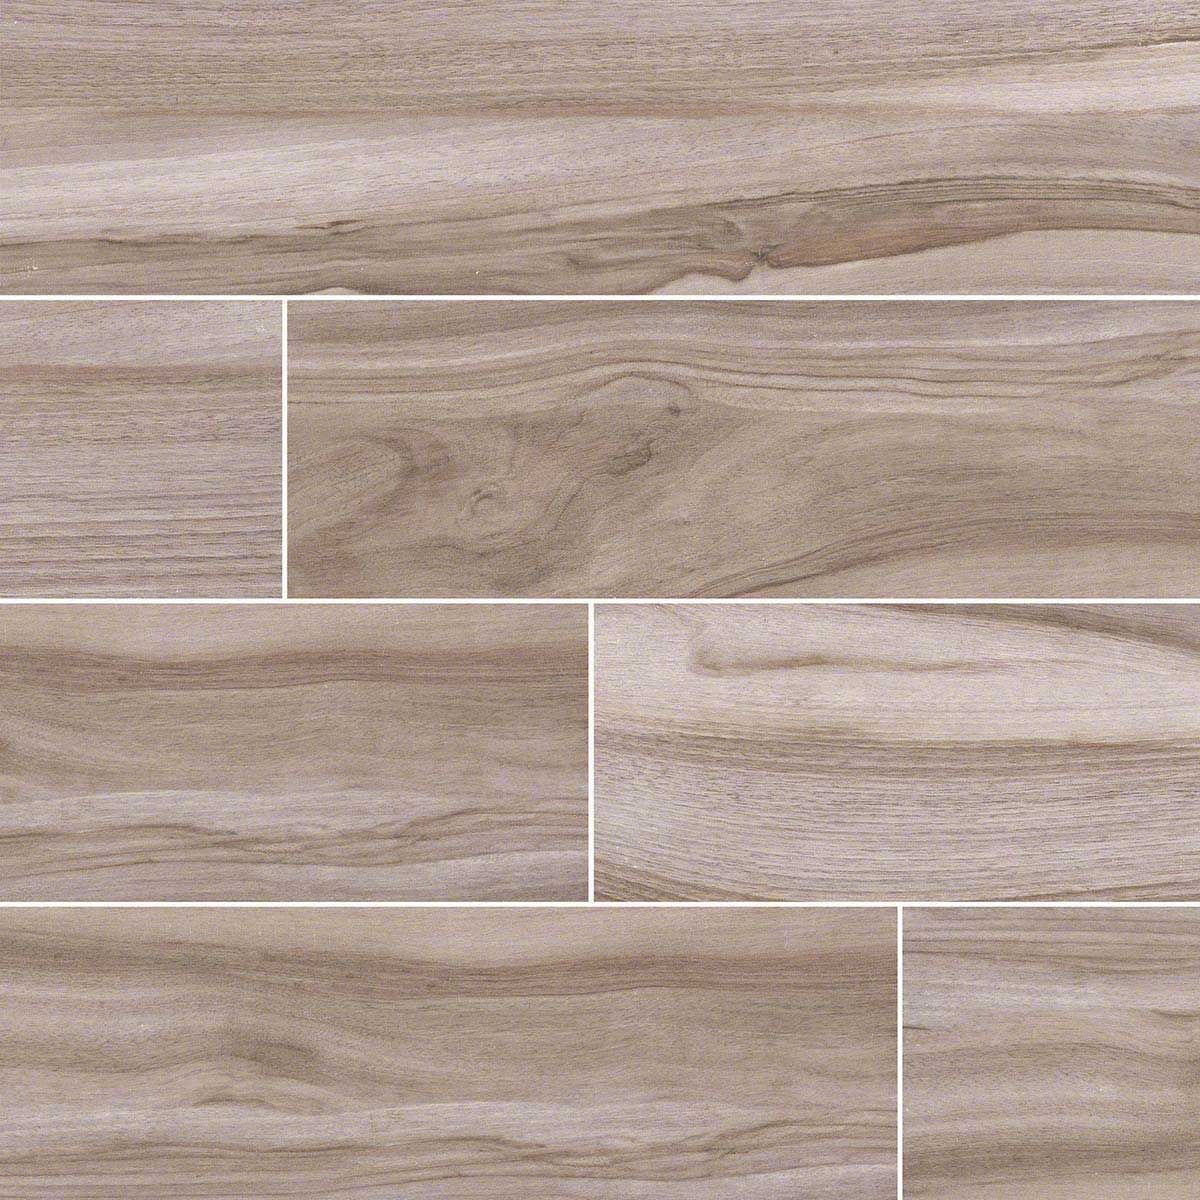 Ash aspenwood series porcelaintile flooring products this beautiful aspenwood porcelain tile series is available in different colors and sizes dailygadgetfo Gallery